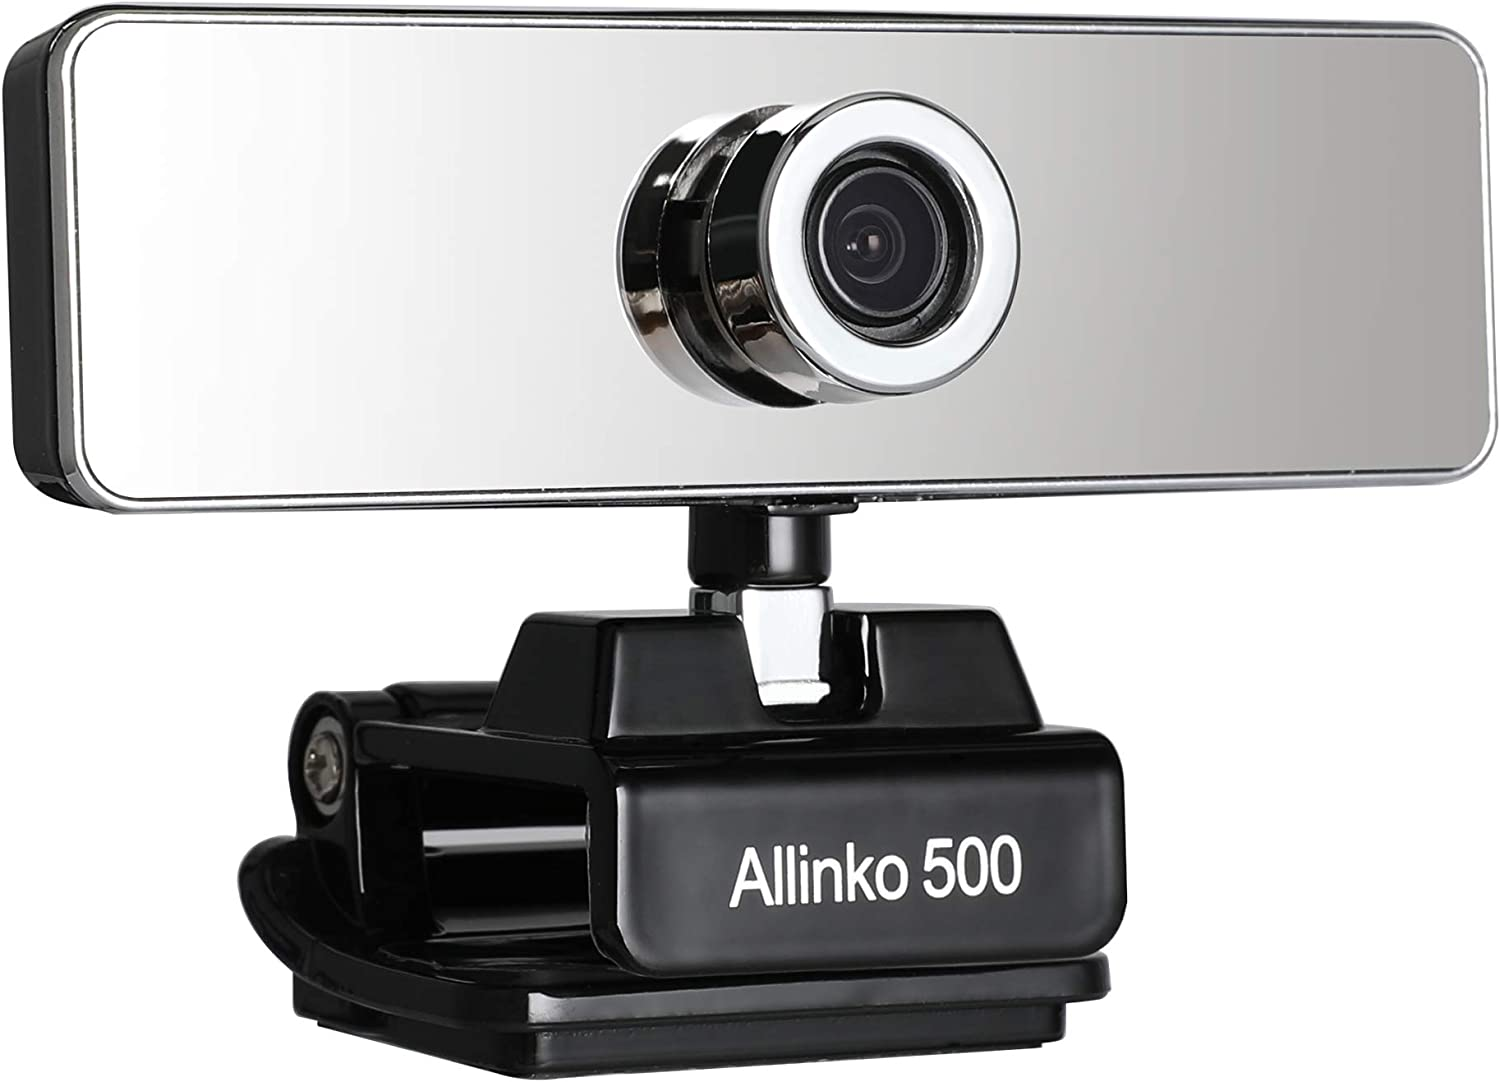 Allinko 500 Webcam 960P Full HD USB Web Camera with Microphone Compatible with Windows 10 8 7 XP Mac OS X, Skype Webcams for Laptop PC iMac Macbook